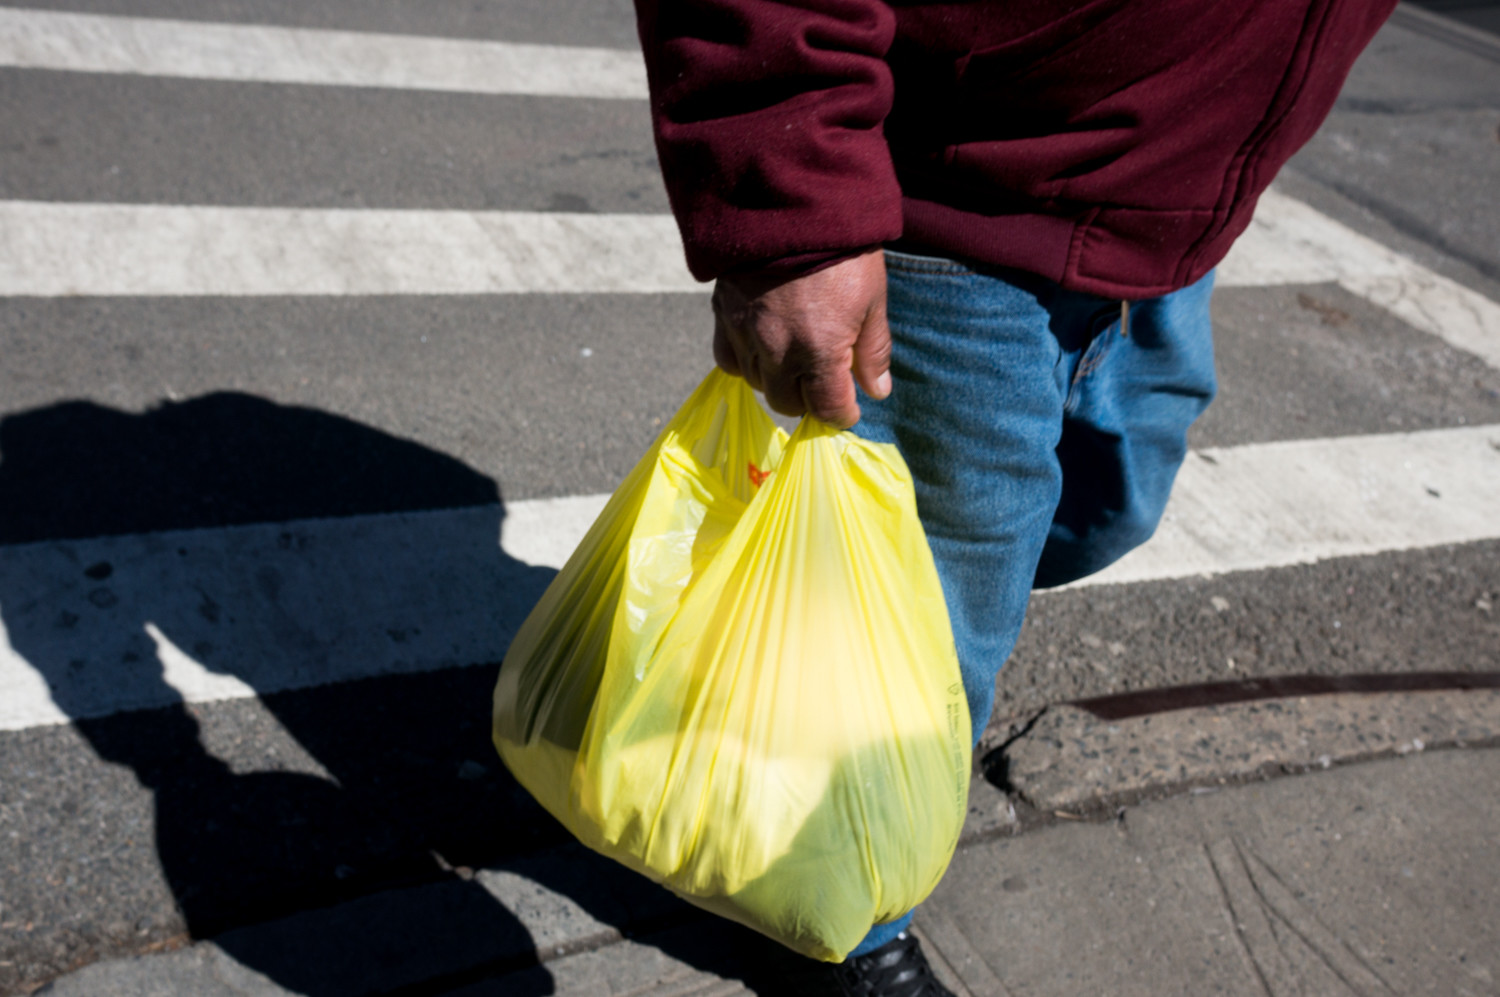 Despite the push to ban plastic bags because of their environmental impact, groups like the American Progressive Bag Alliance defend what they call a thriving industry employing more than 24,600 people across the country.